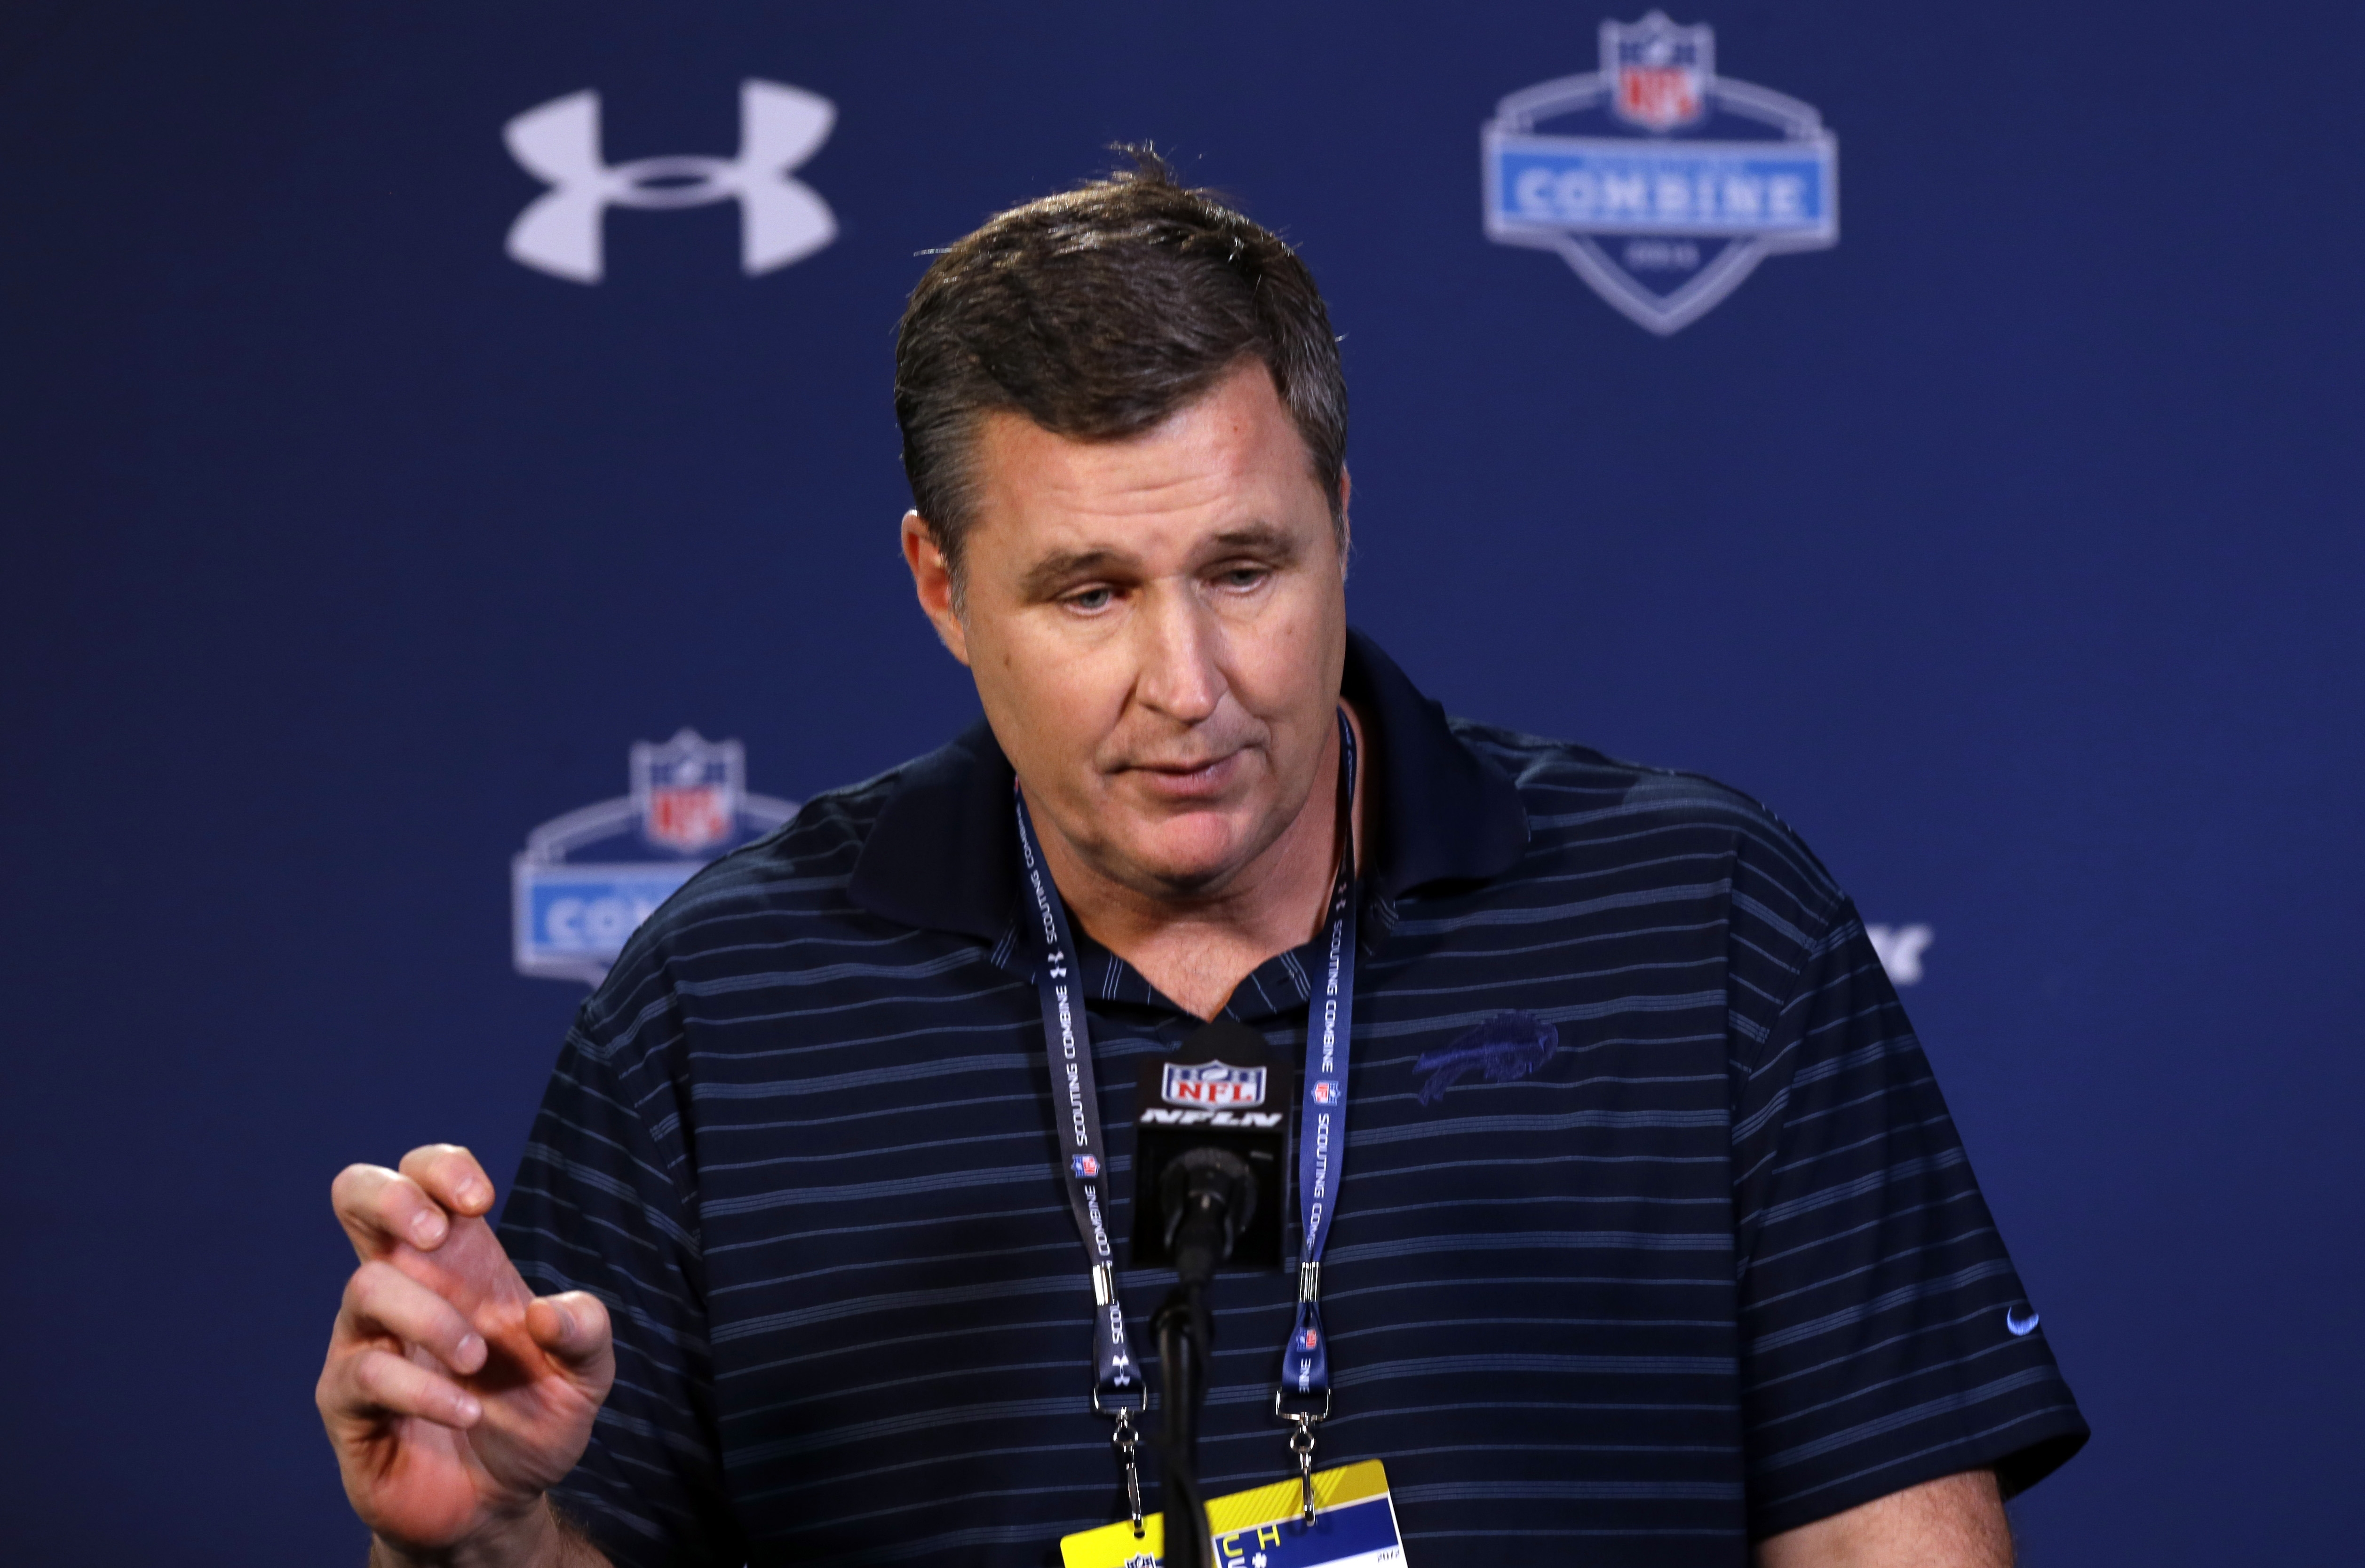 Doug Marrone plans to retain elements of the departed Mike Pettine's defense.